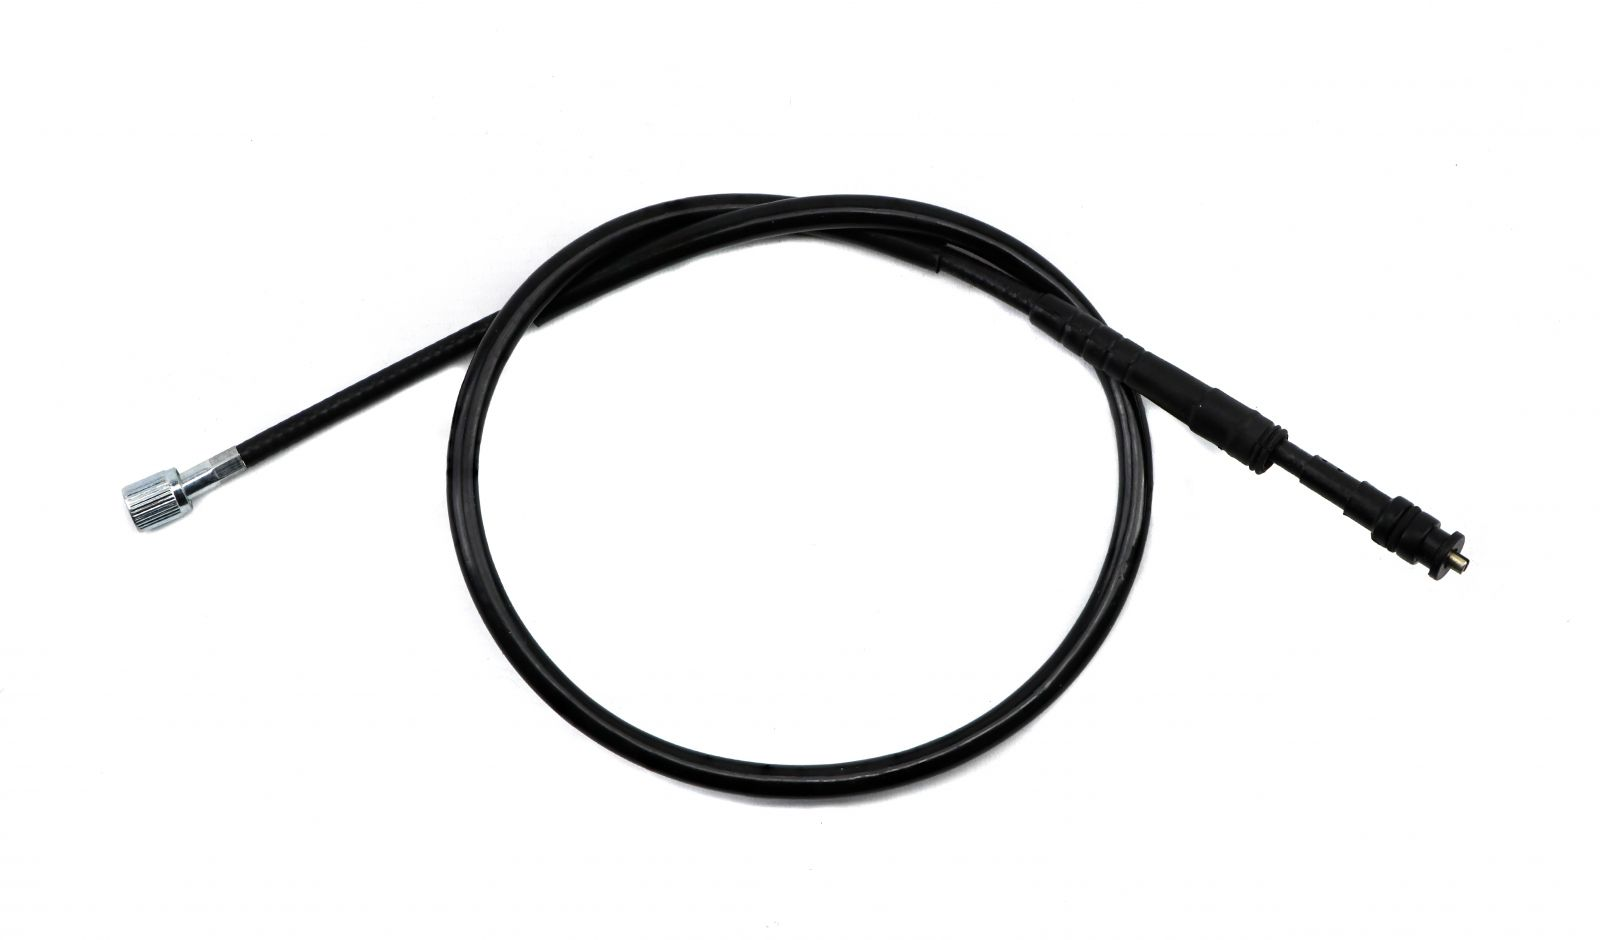 speedo cables - 051573H image